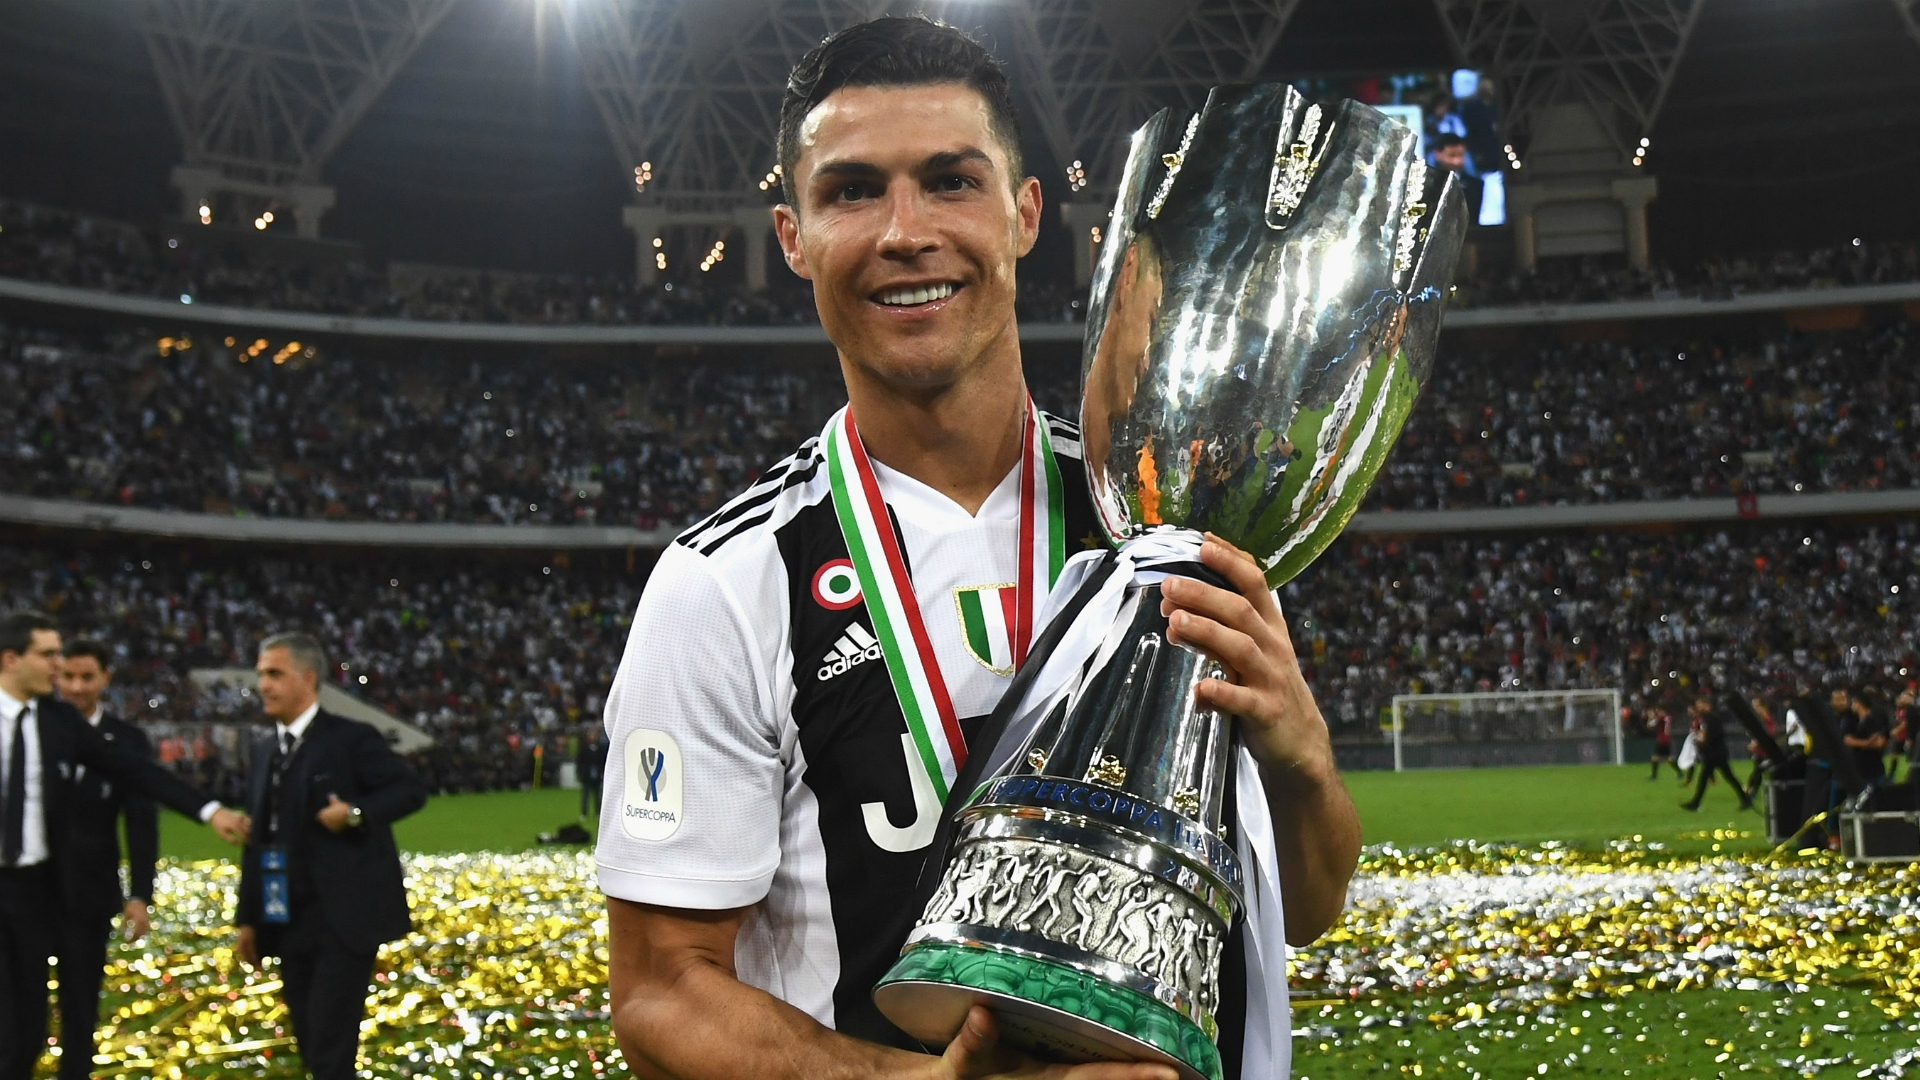 Cristiano Ronaldo's £28m-a-year Salary at Juventus revealed: earns three times more than any other Serie A player